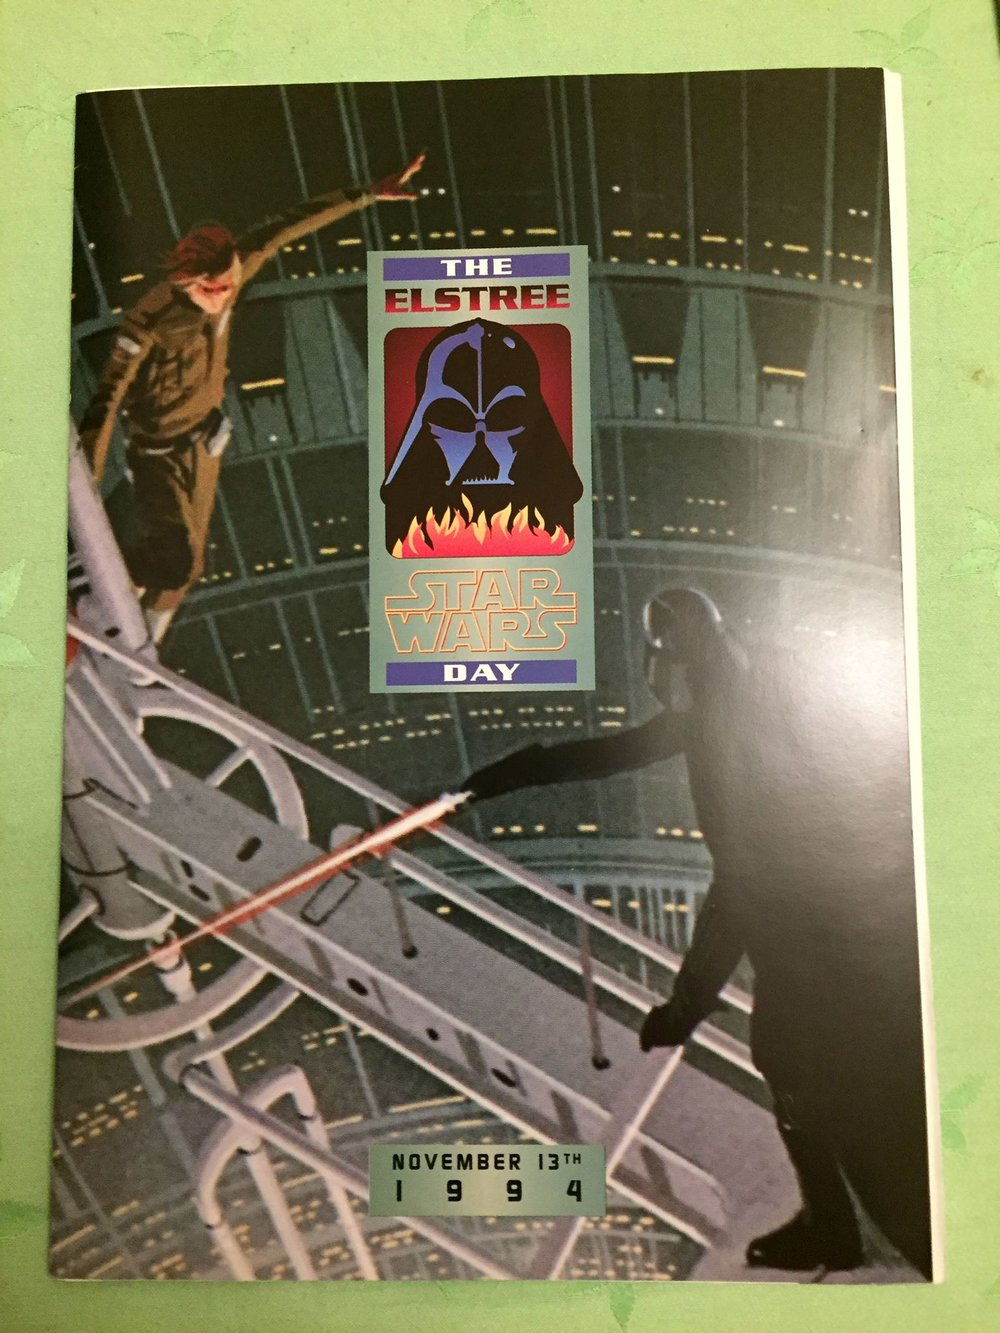 The Elstree Star Wars Day Program (November 13th, 1994) - From the Collection of Zia Rezvi